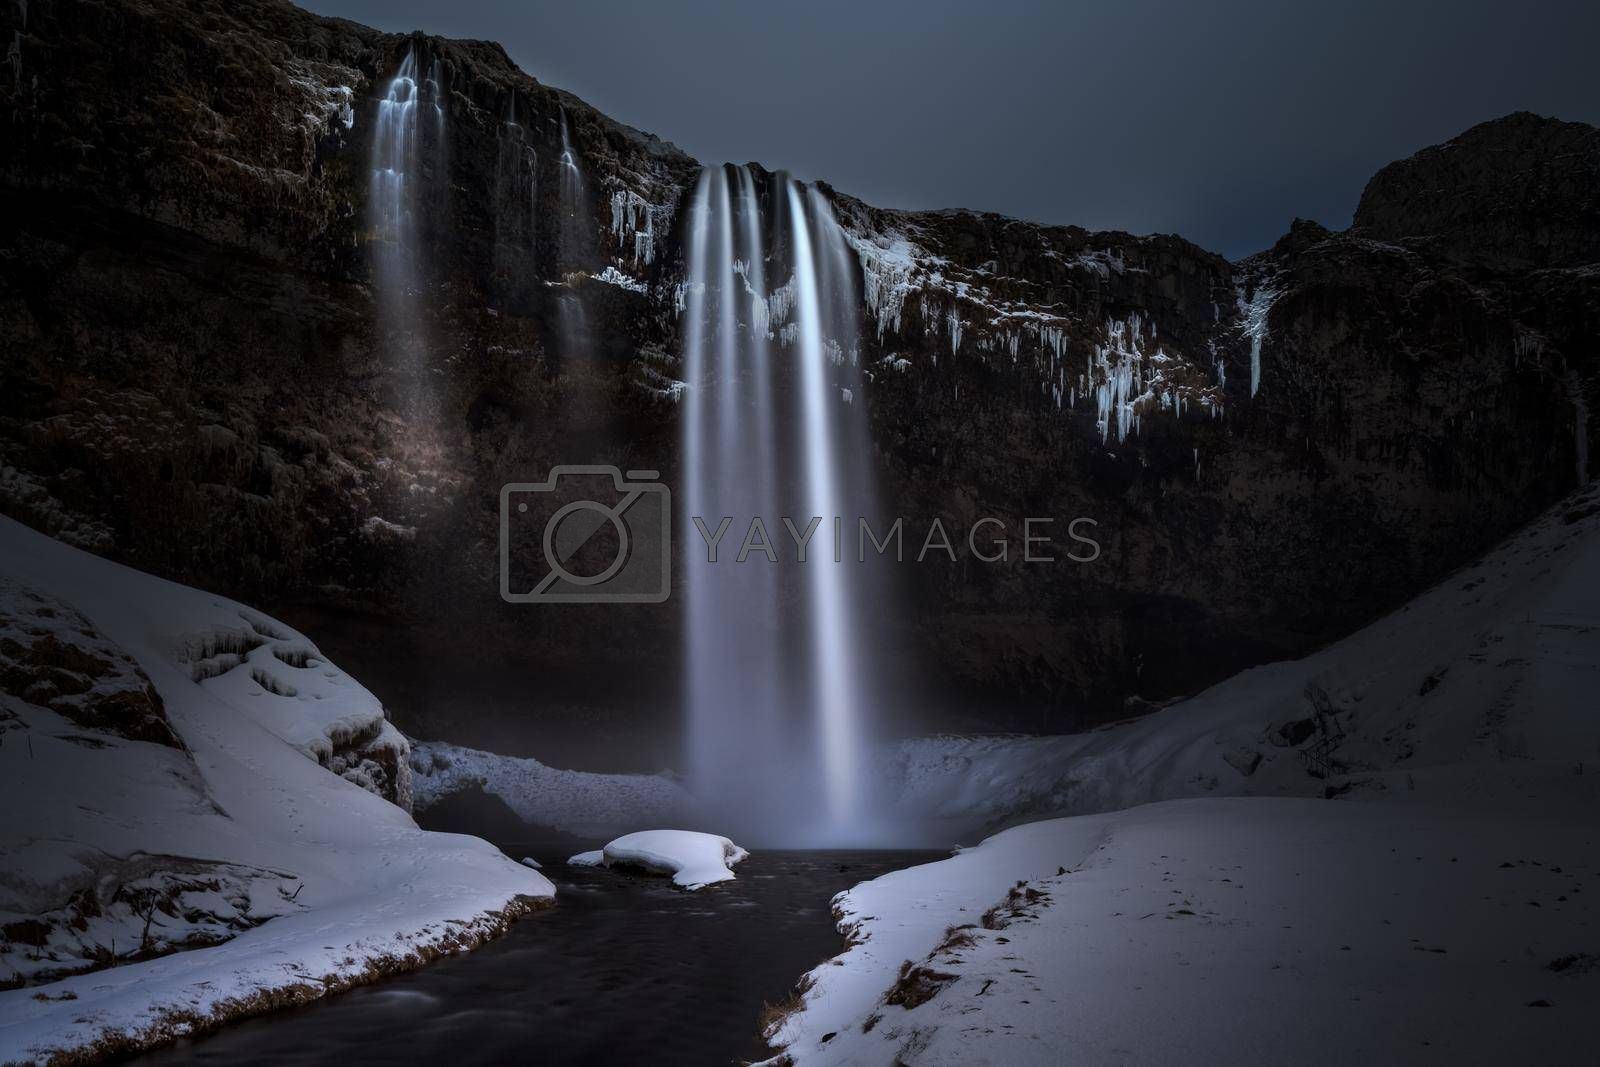 Amazing Landscape of a Seljalandsfoss Waterfall. Travel Destination. Winter Season. Beautiful Nature of Iceland.